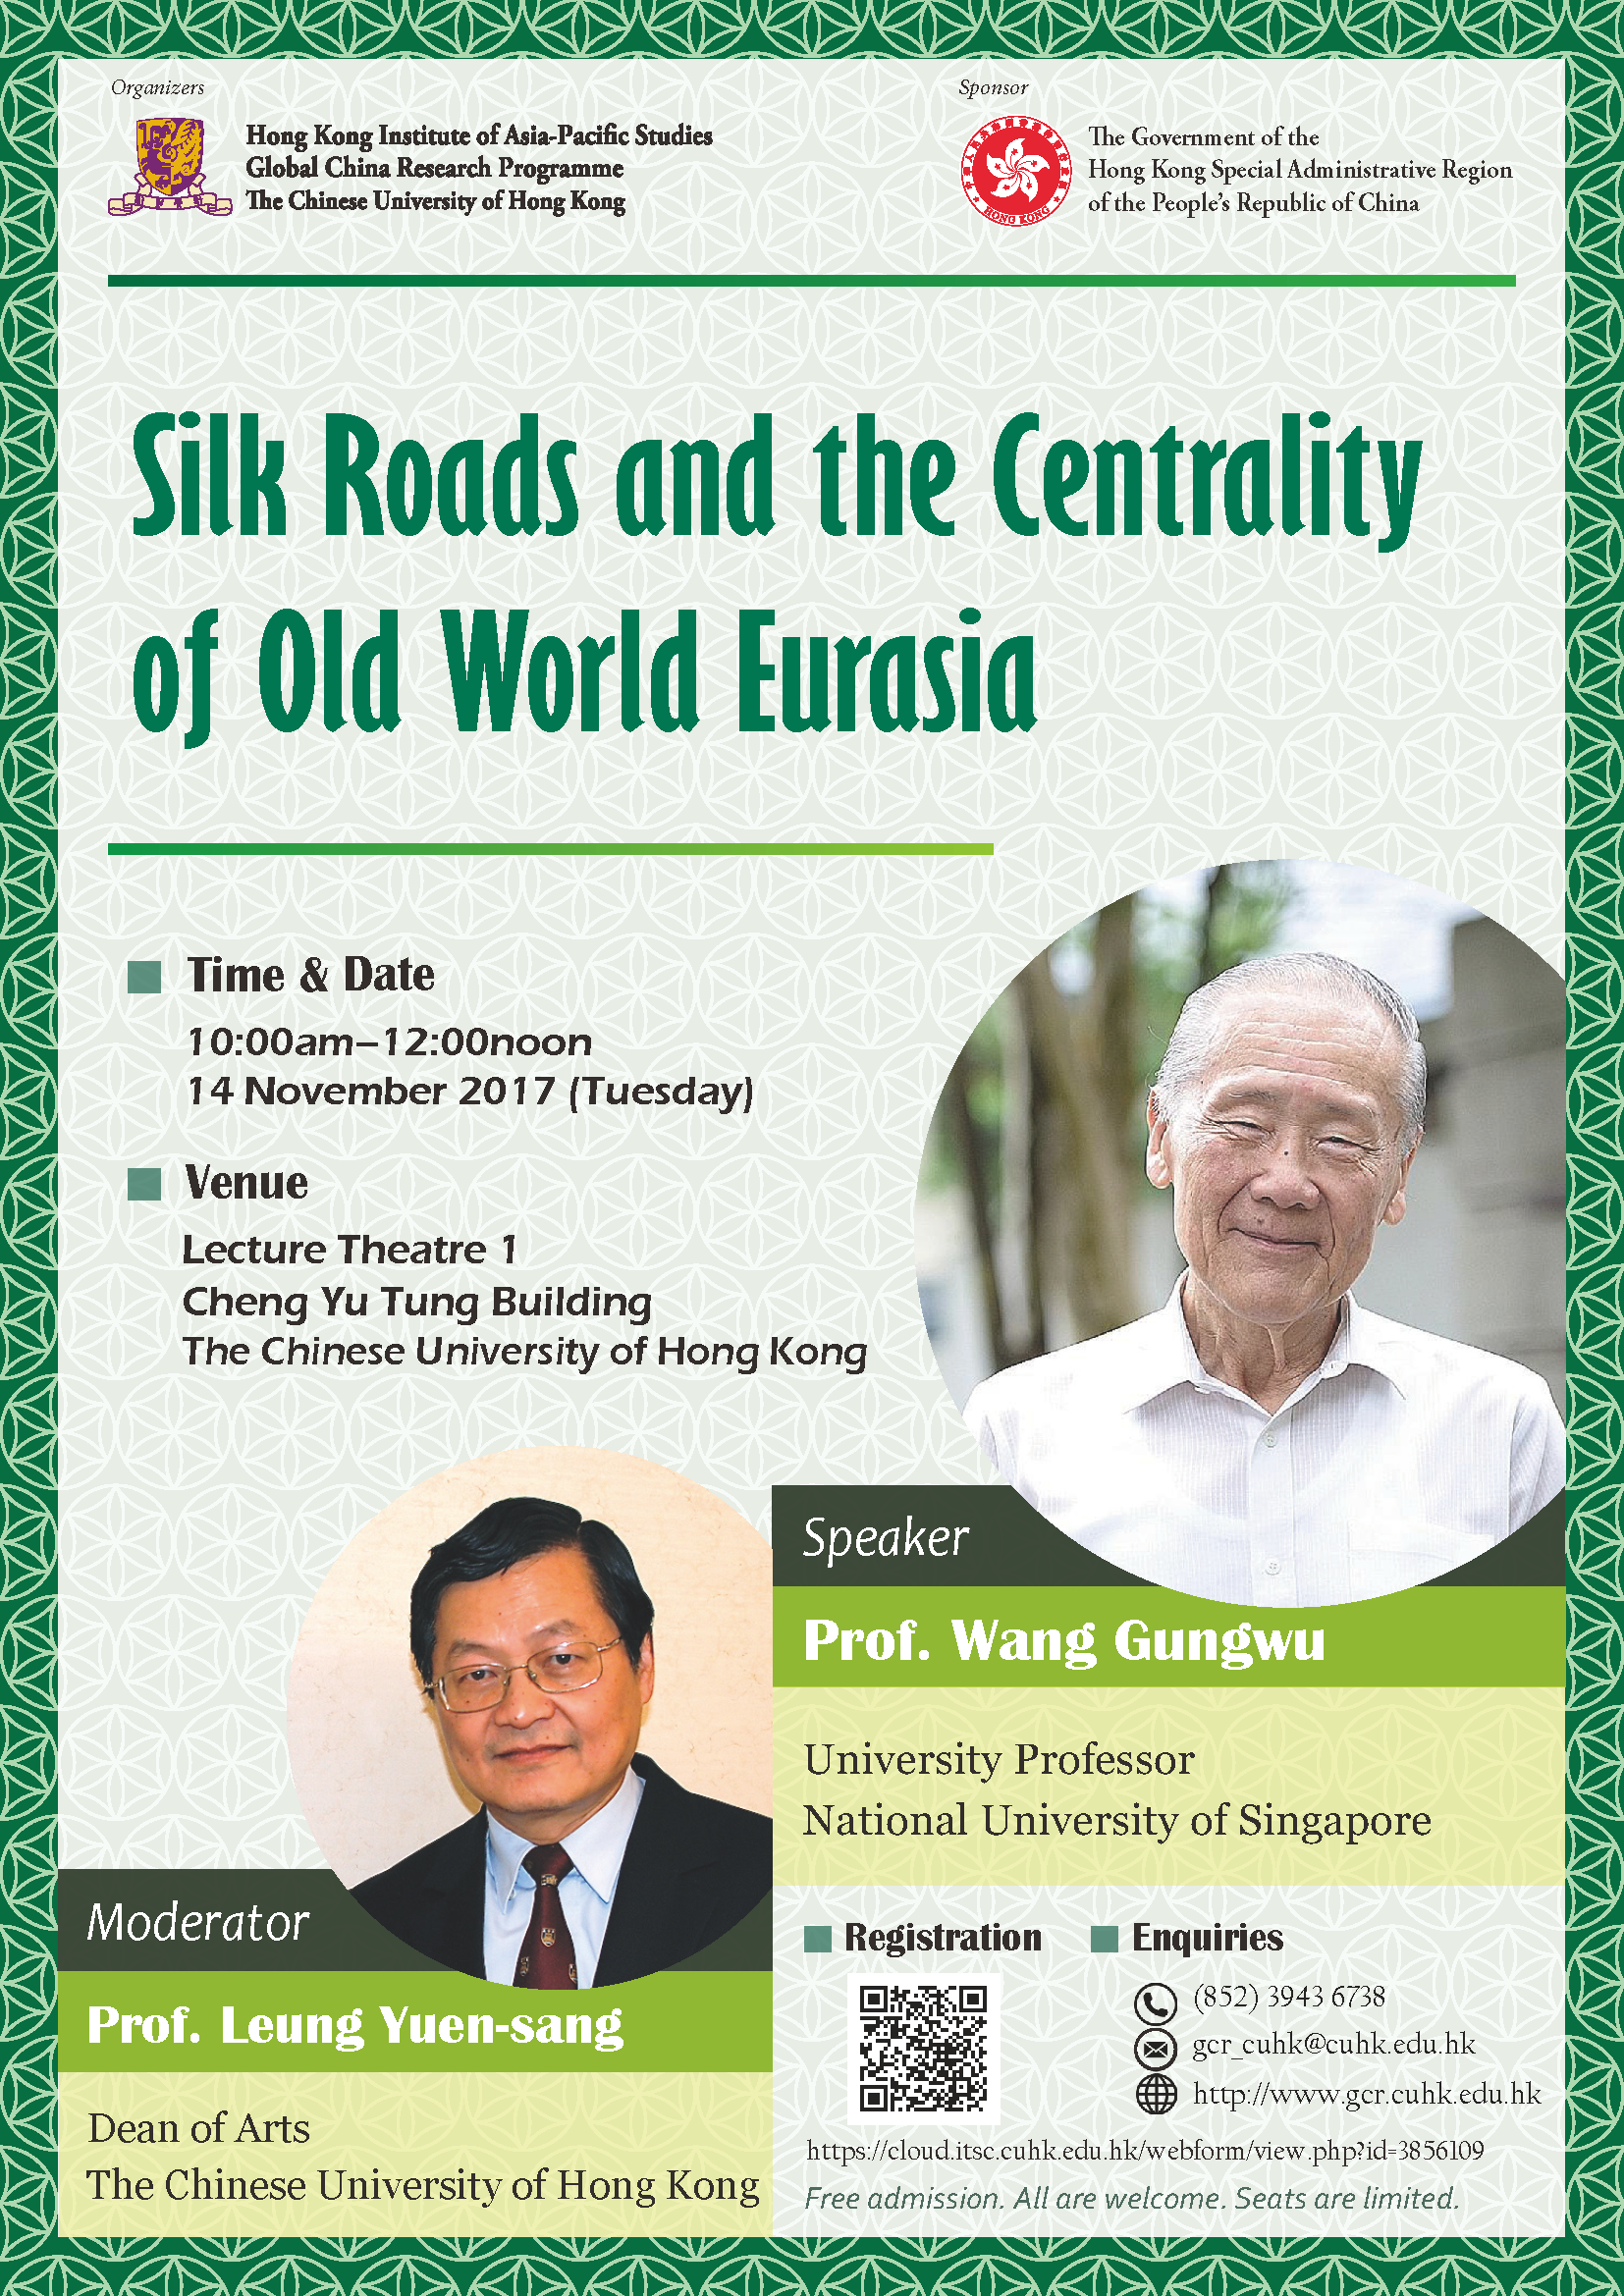 Silk Roads and the Centrality of Old World Eurasia